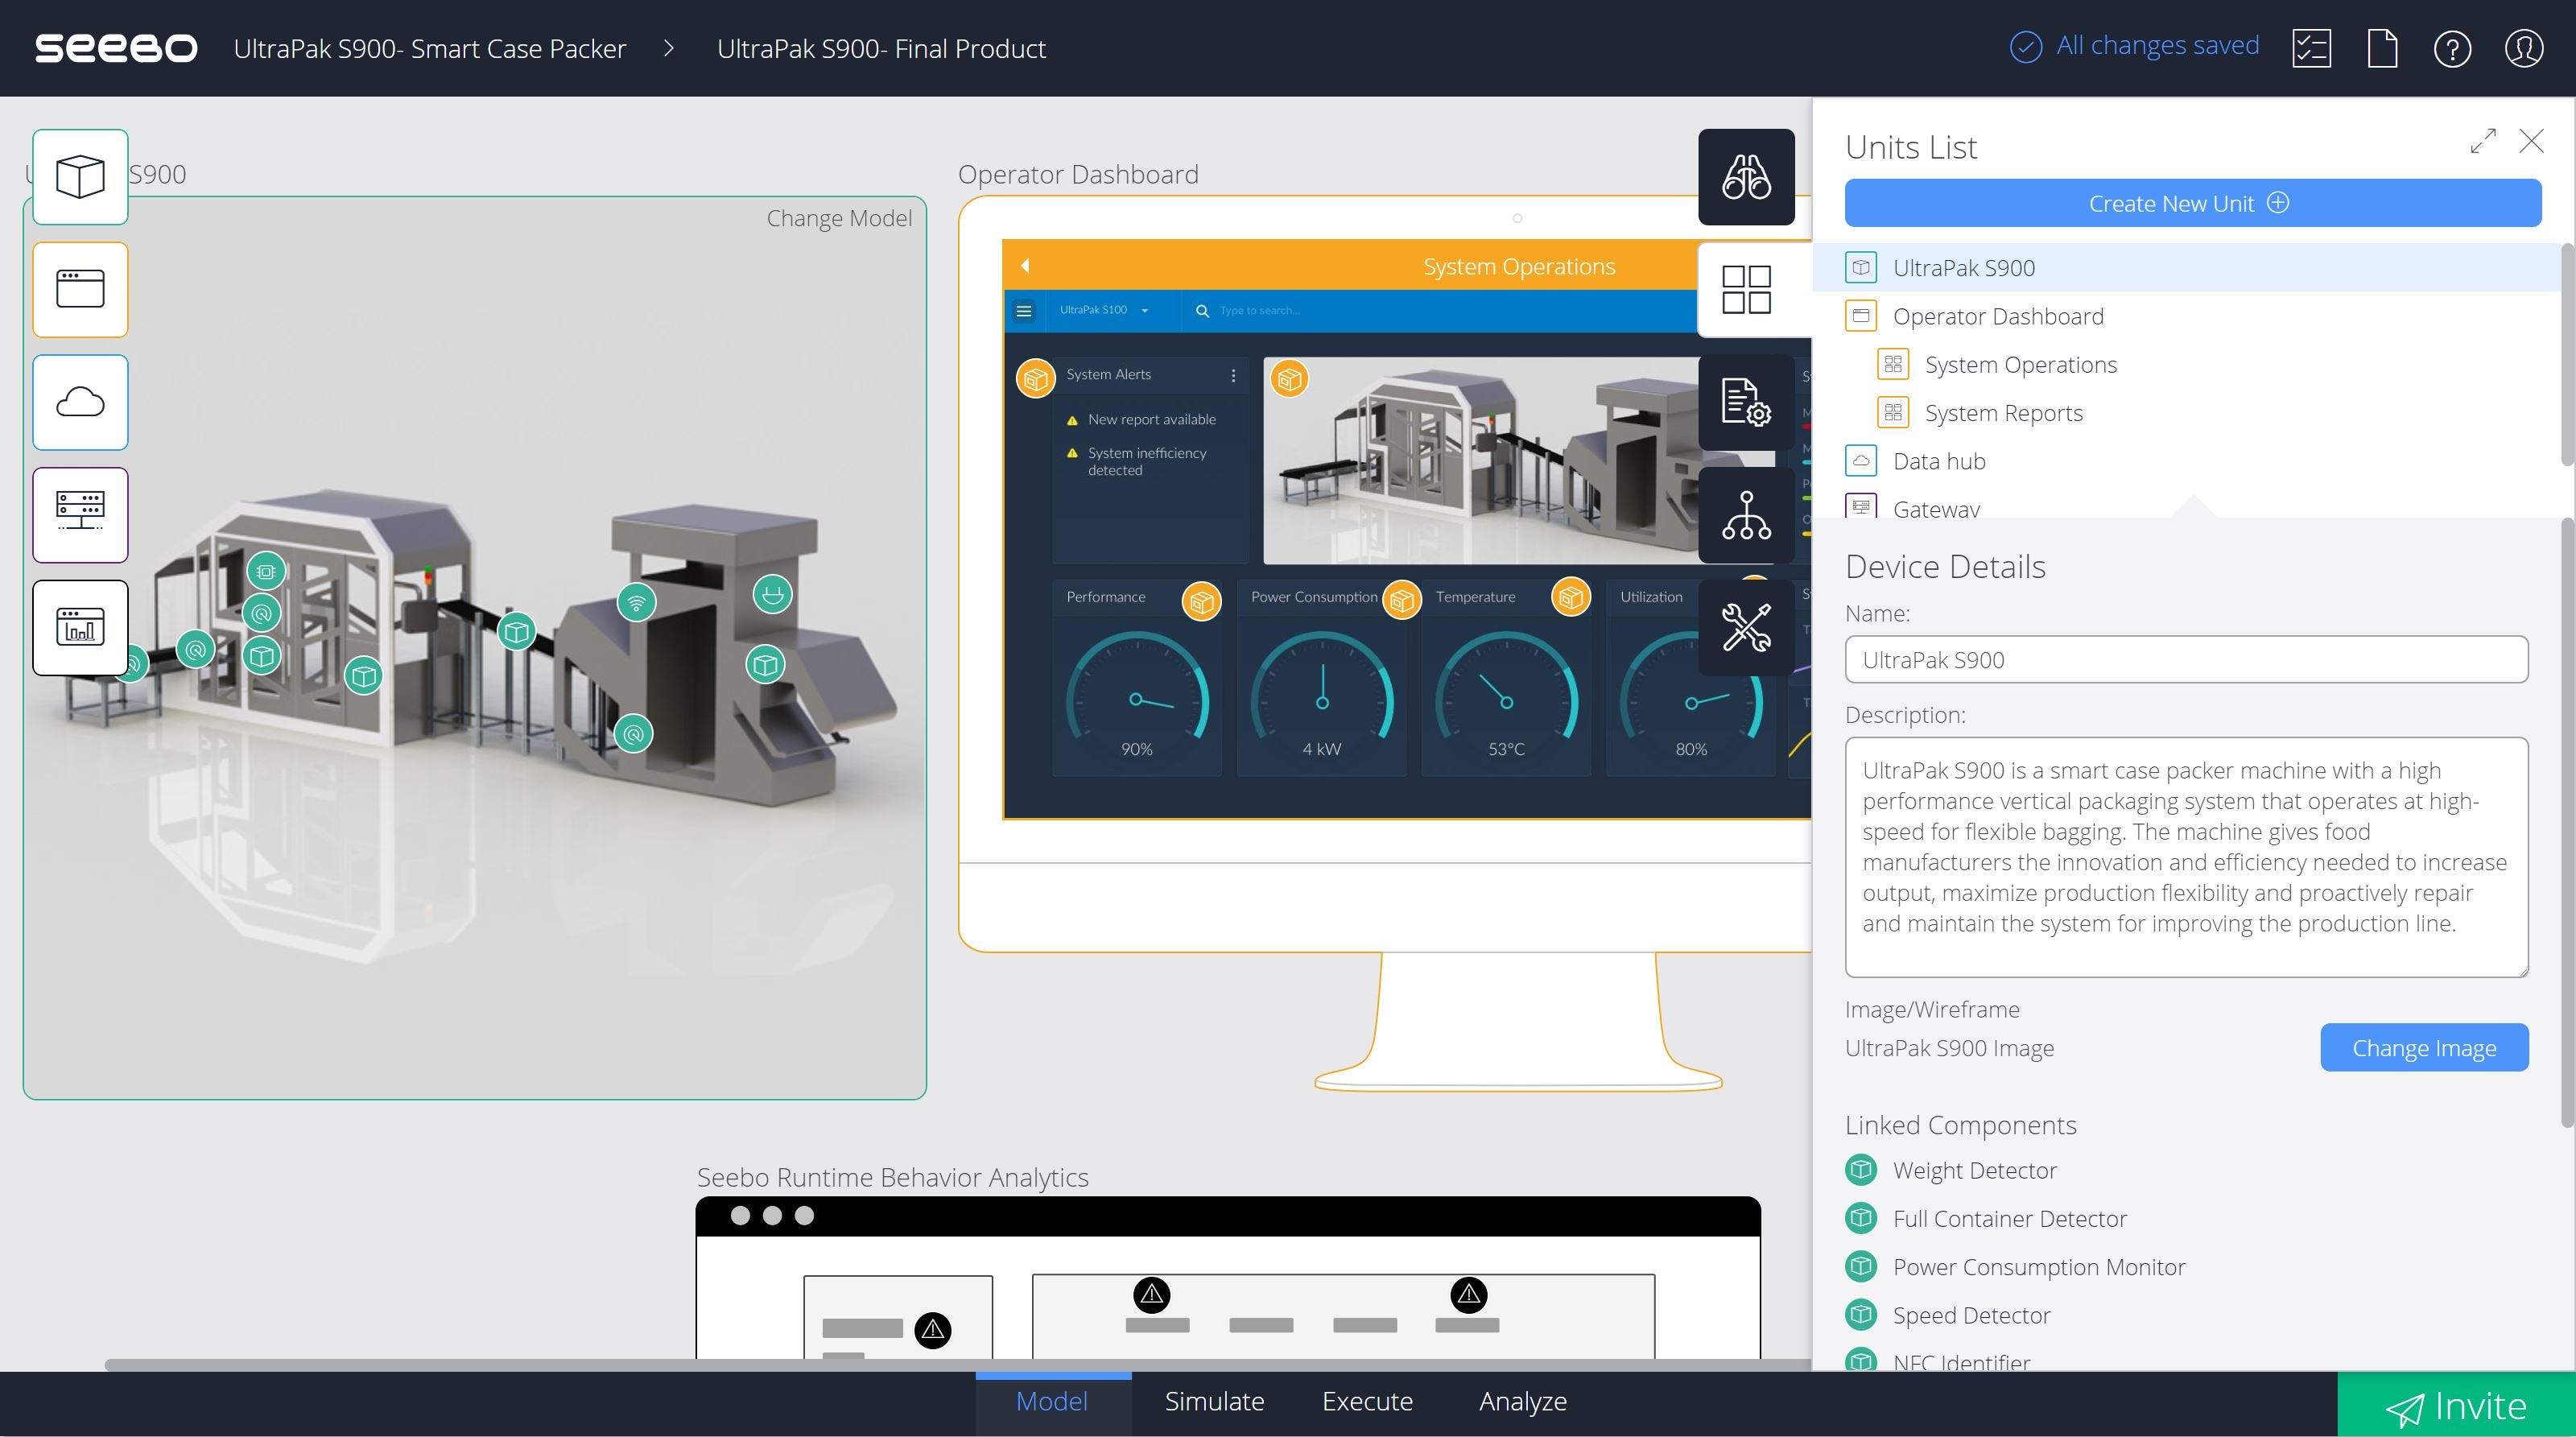 Seebo Software - Create new unit